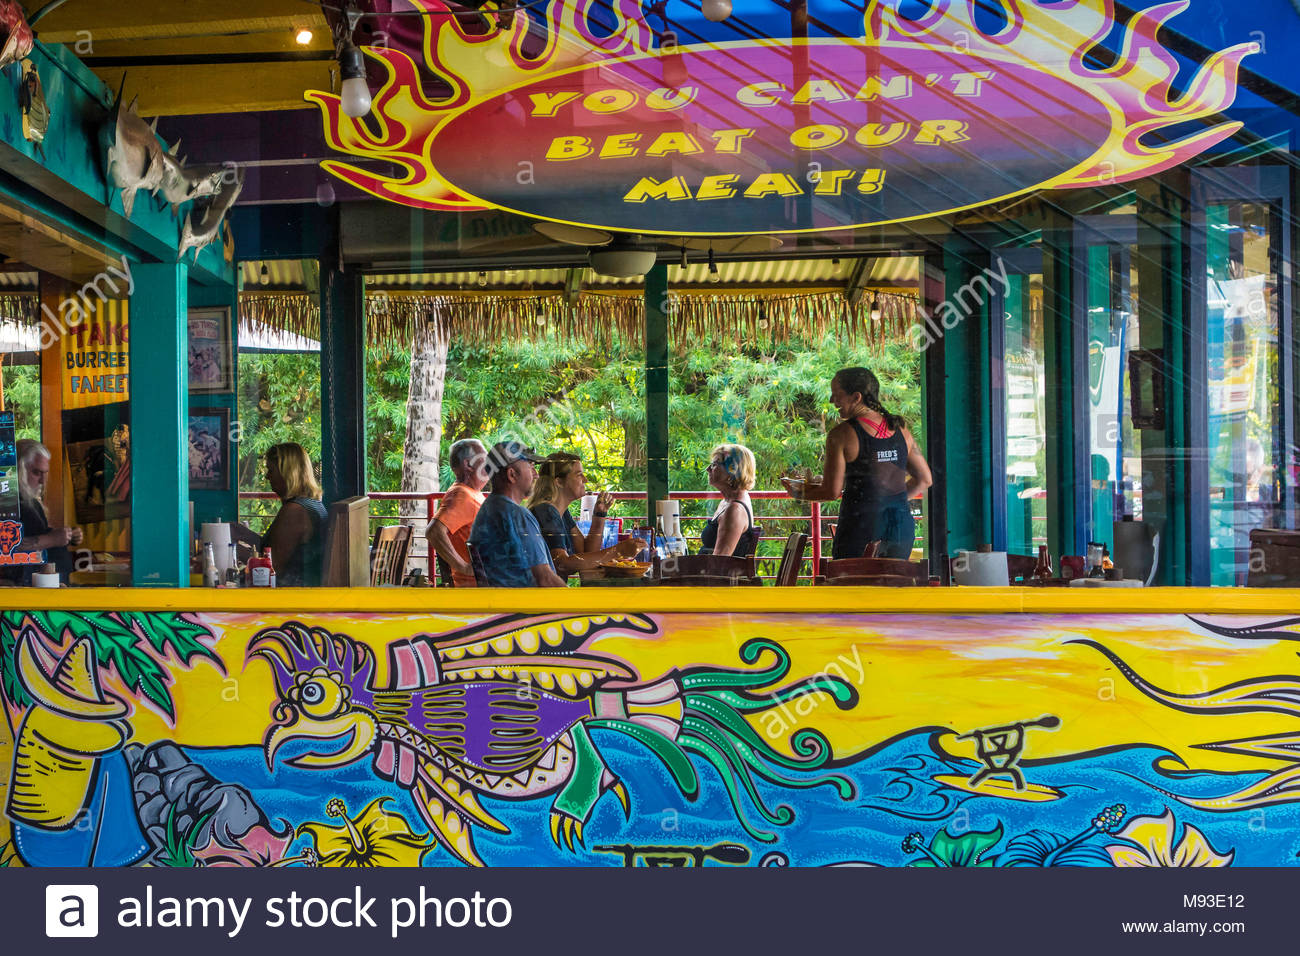 Mexican cafe restaurant double entendre mural travel on the island of Maui in the state of Hawaii USA - Stock Image